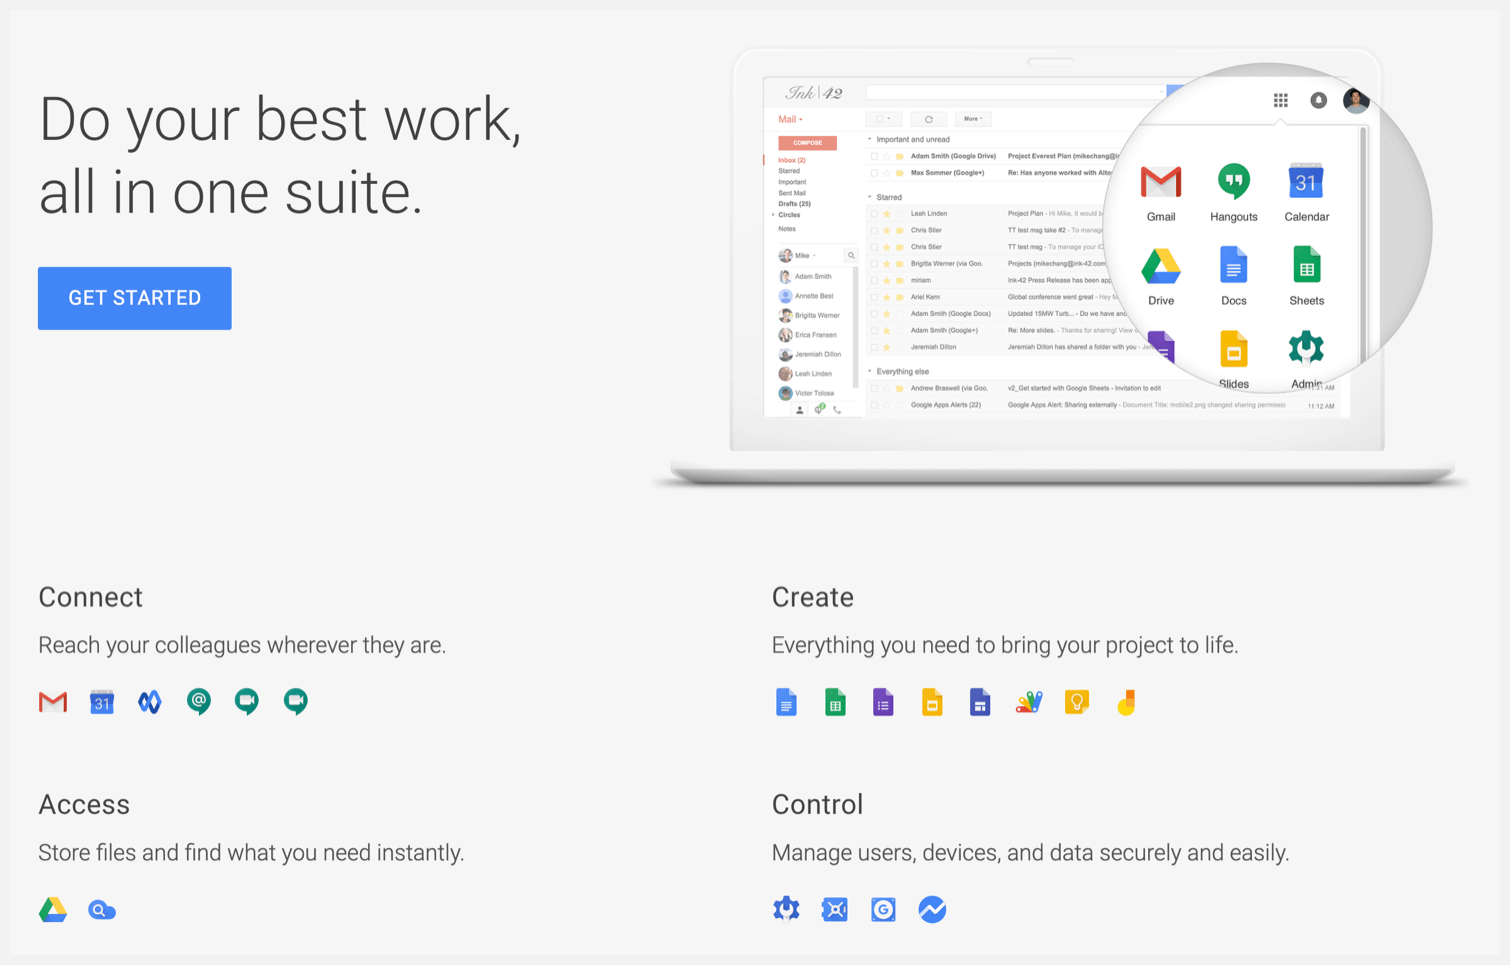 G Suite's homepage.